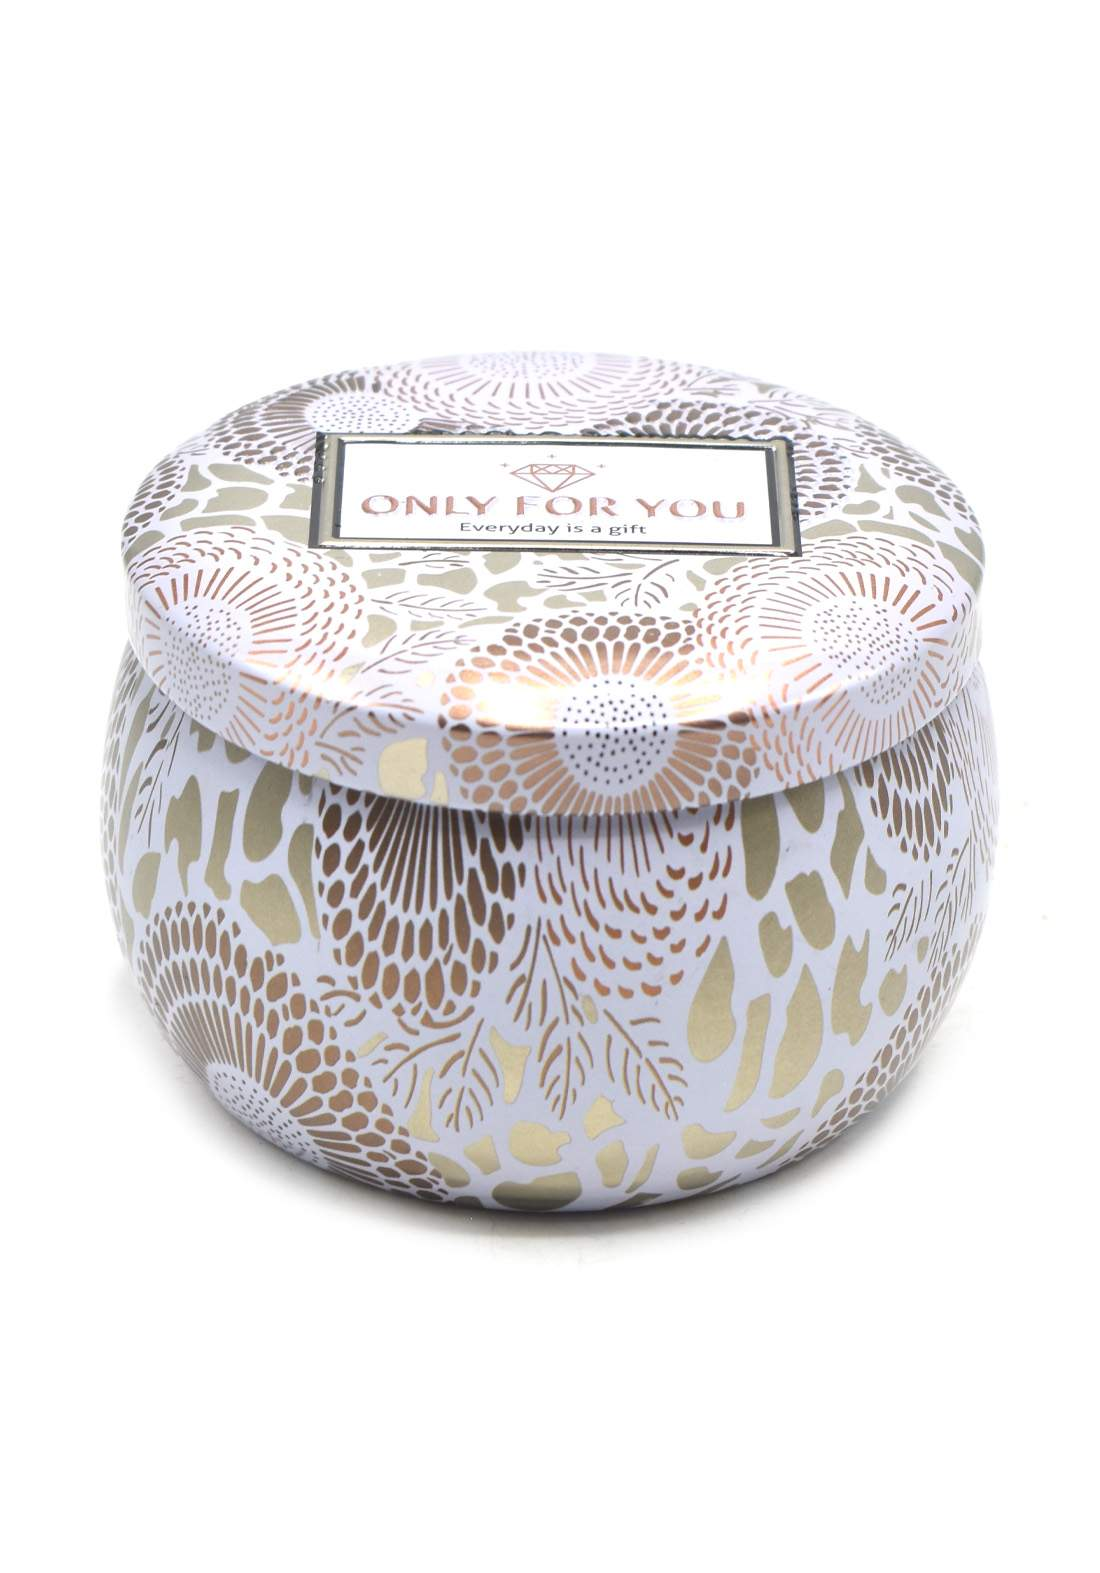 Only For you Scented Candle شمعة عطرية عطر ليمون